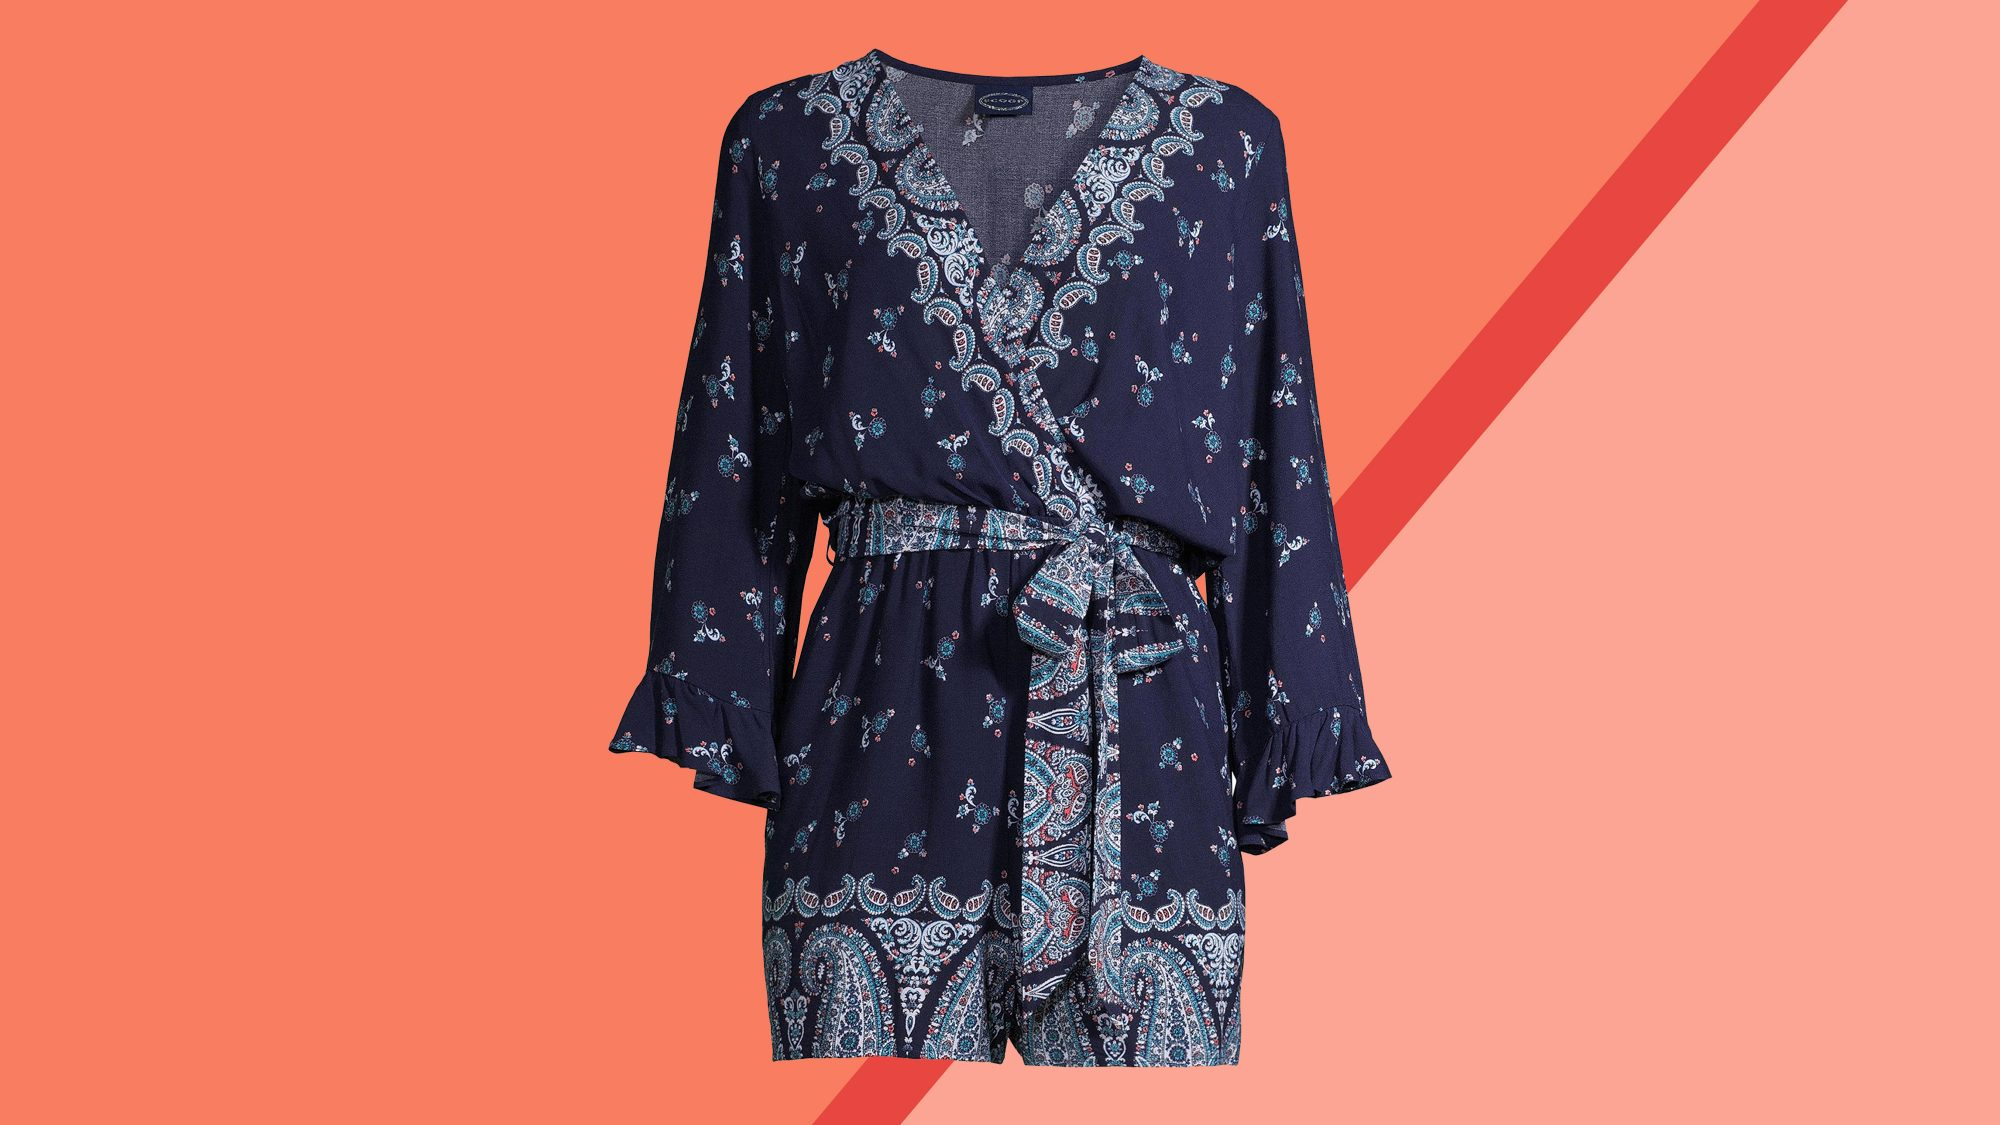 Walmart Clothes: rompers and jumpsuits